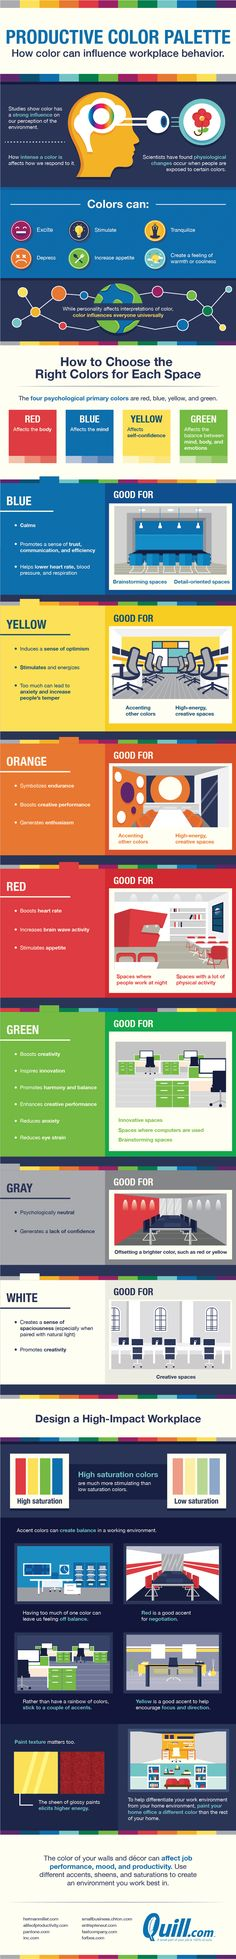 Workplace Design: The Best Colors For Innovation, Creativity, and Focus